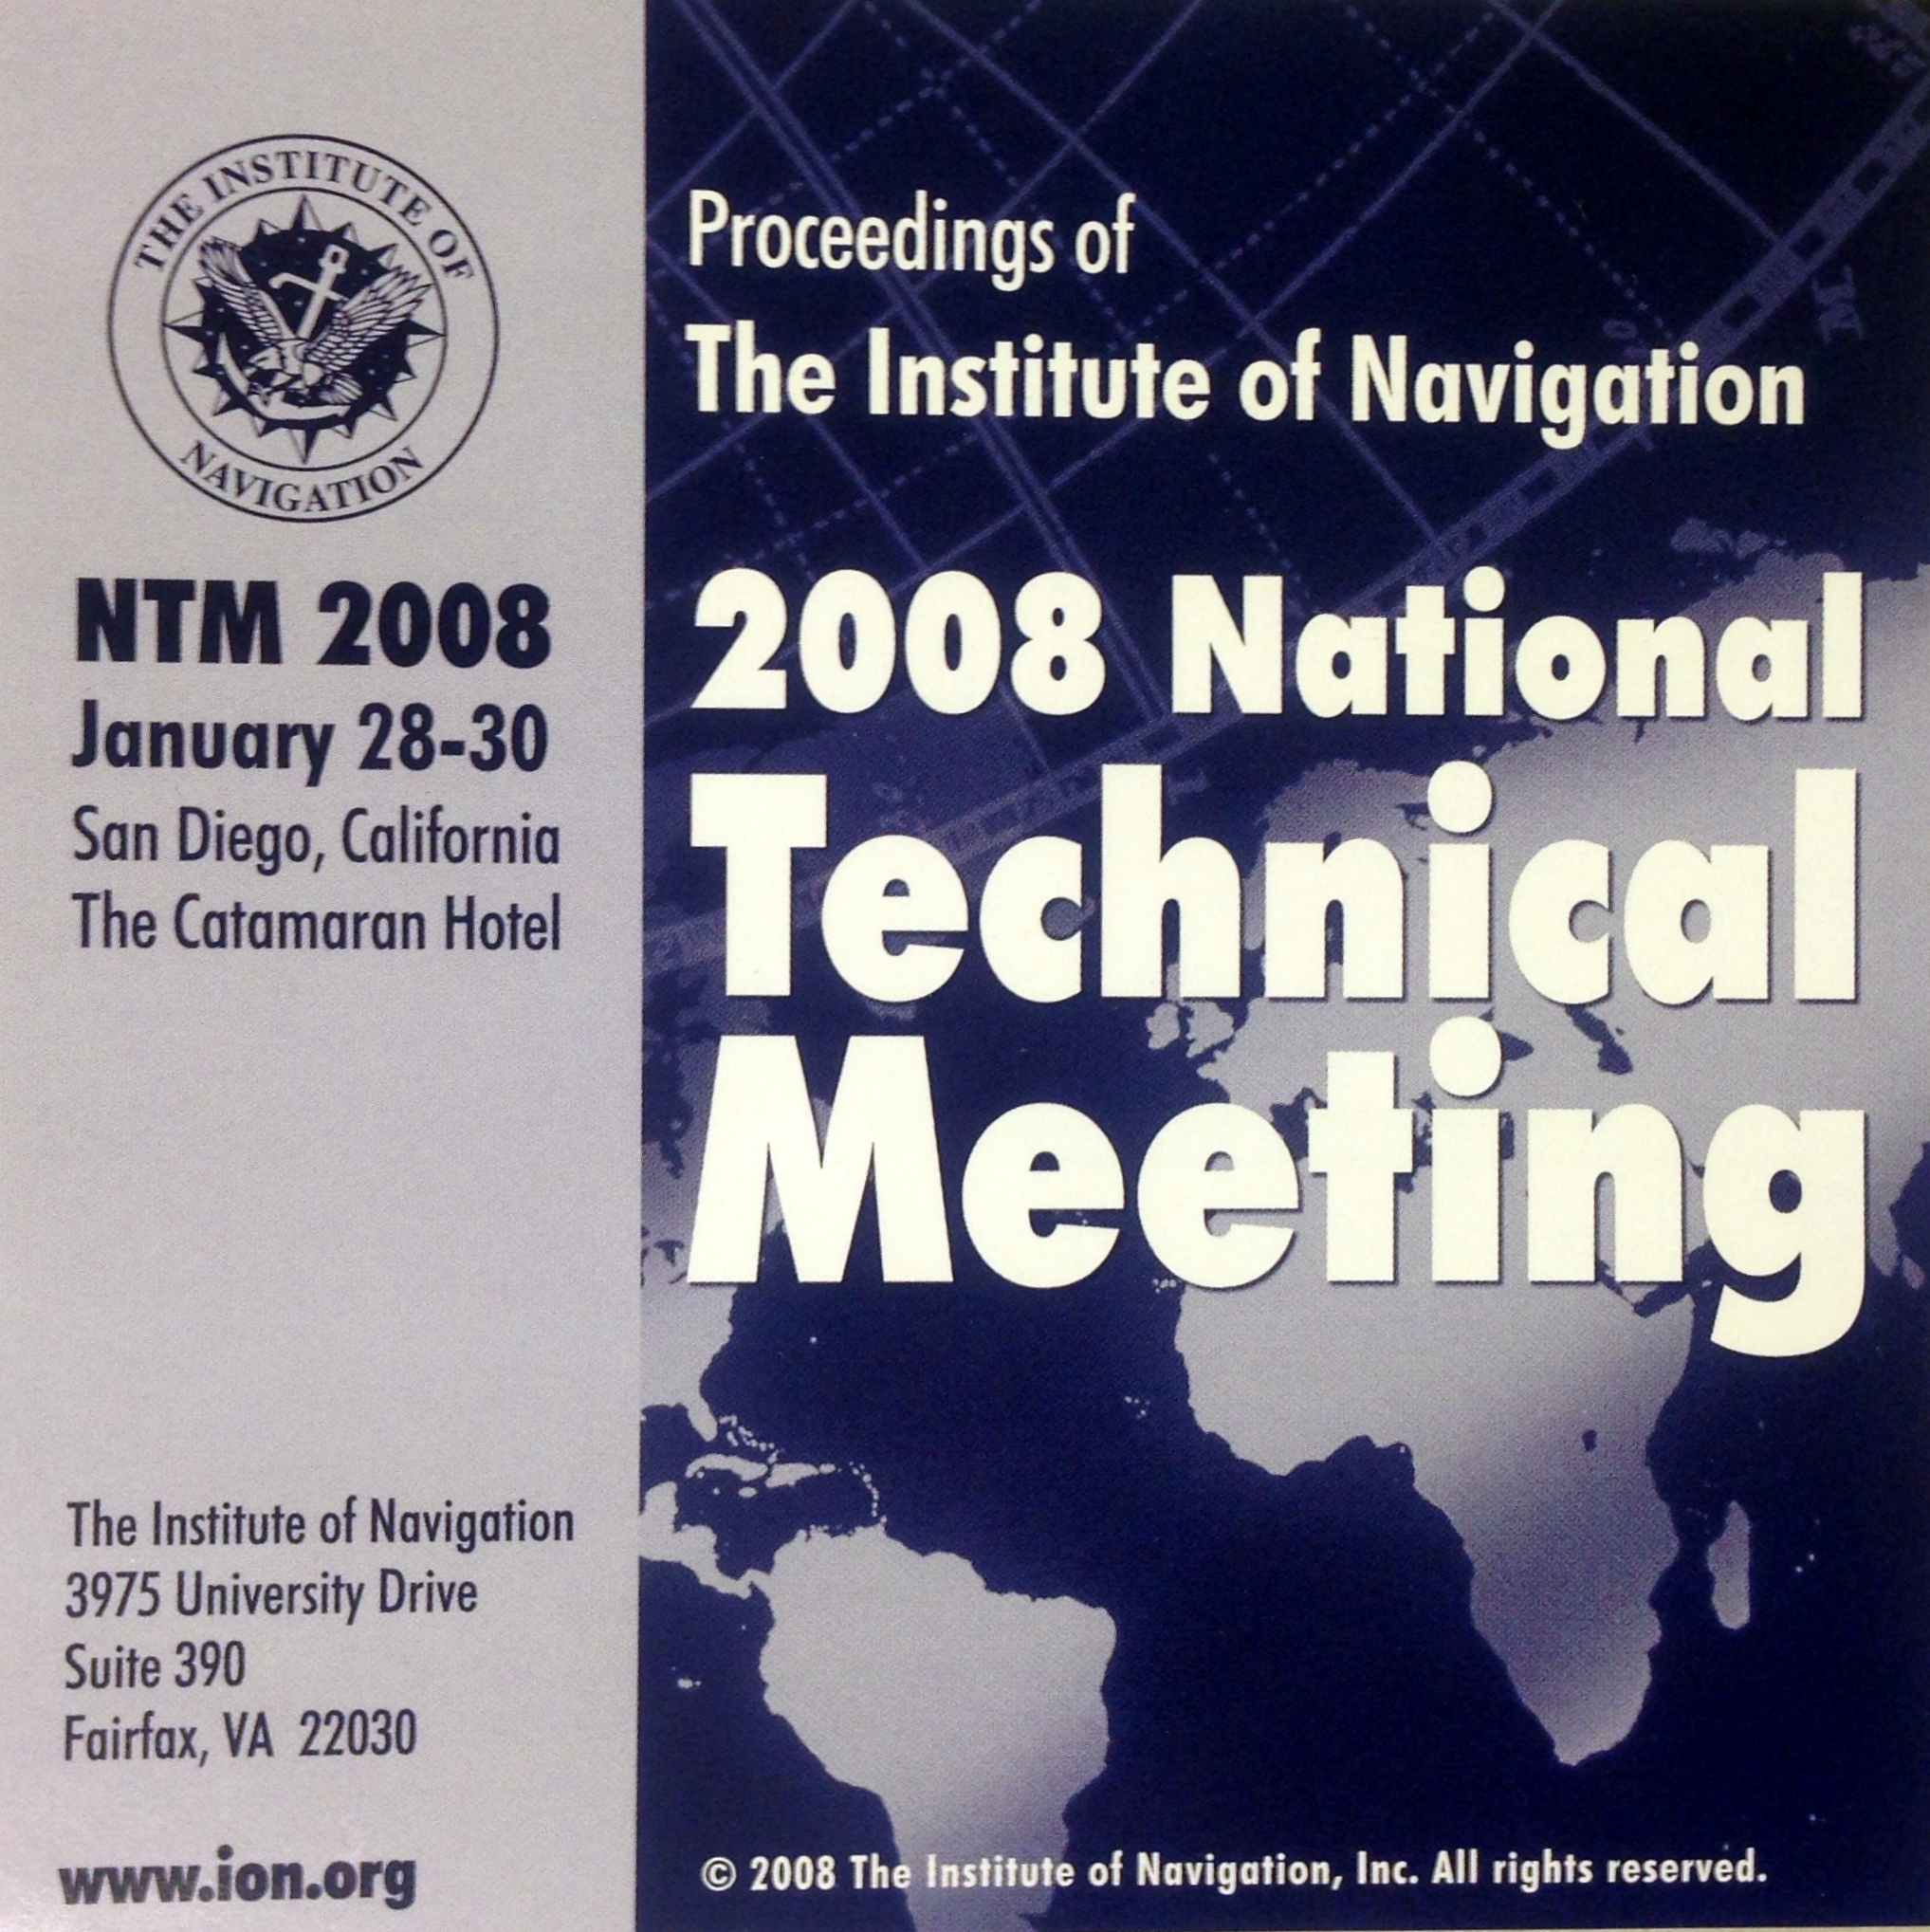 Proceedings Image: NTM